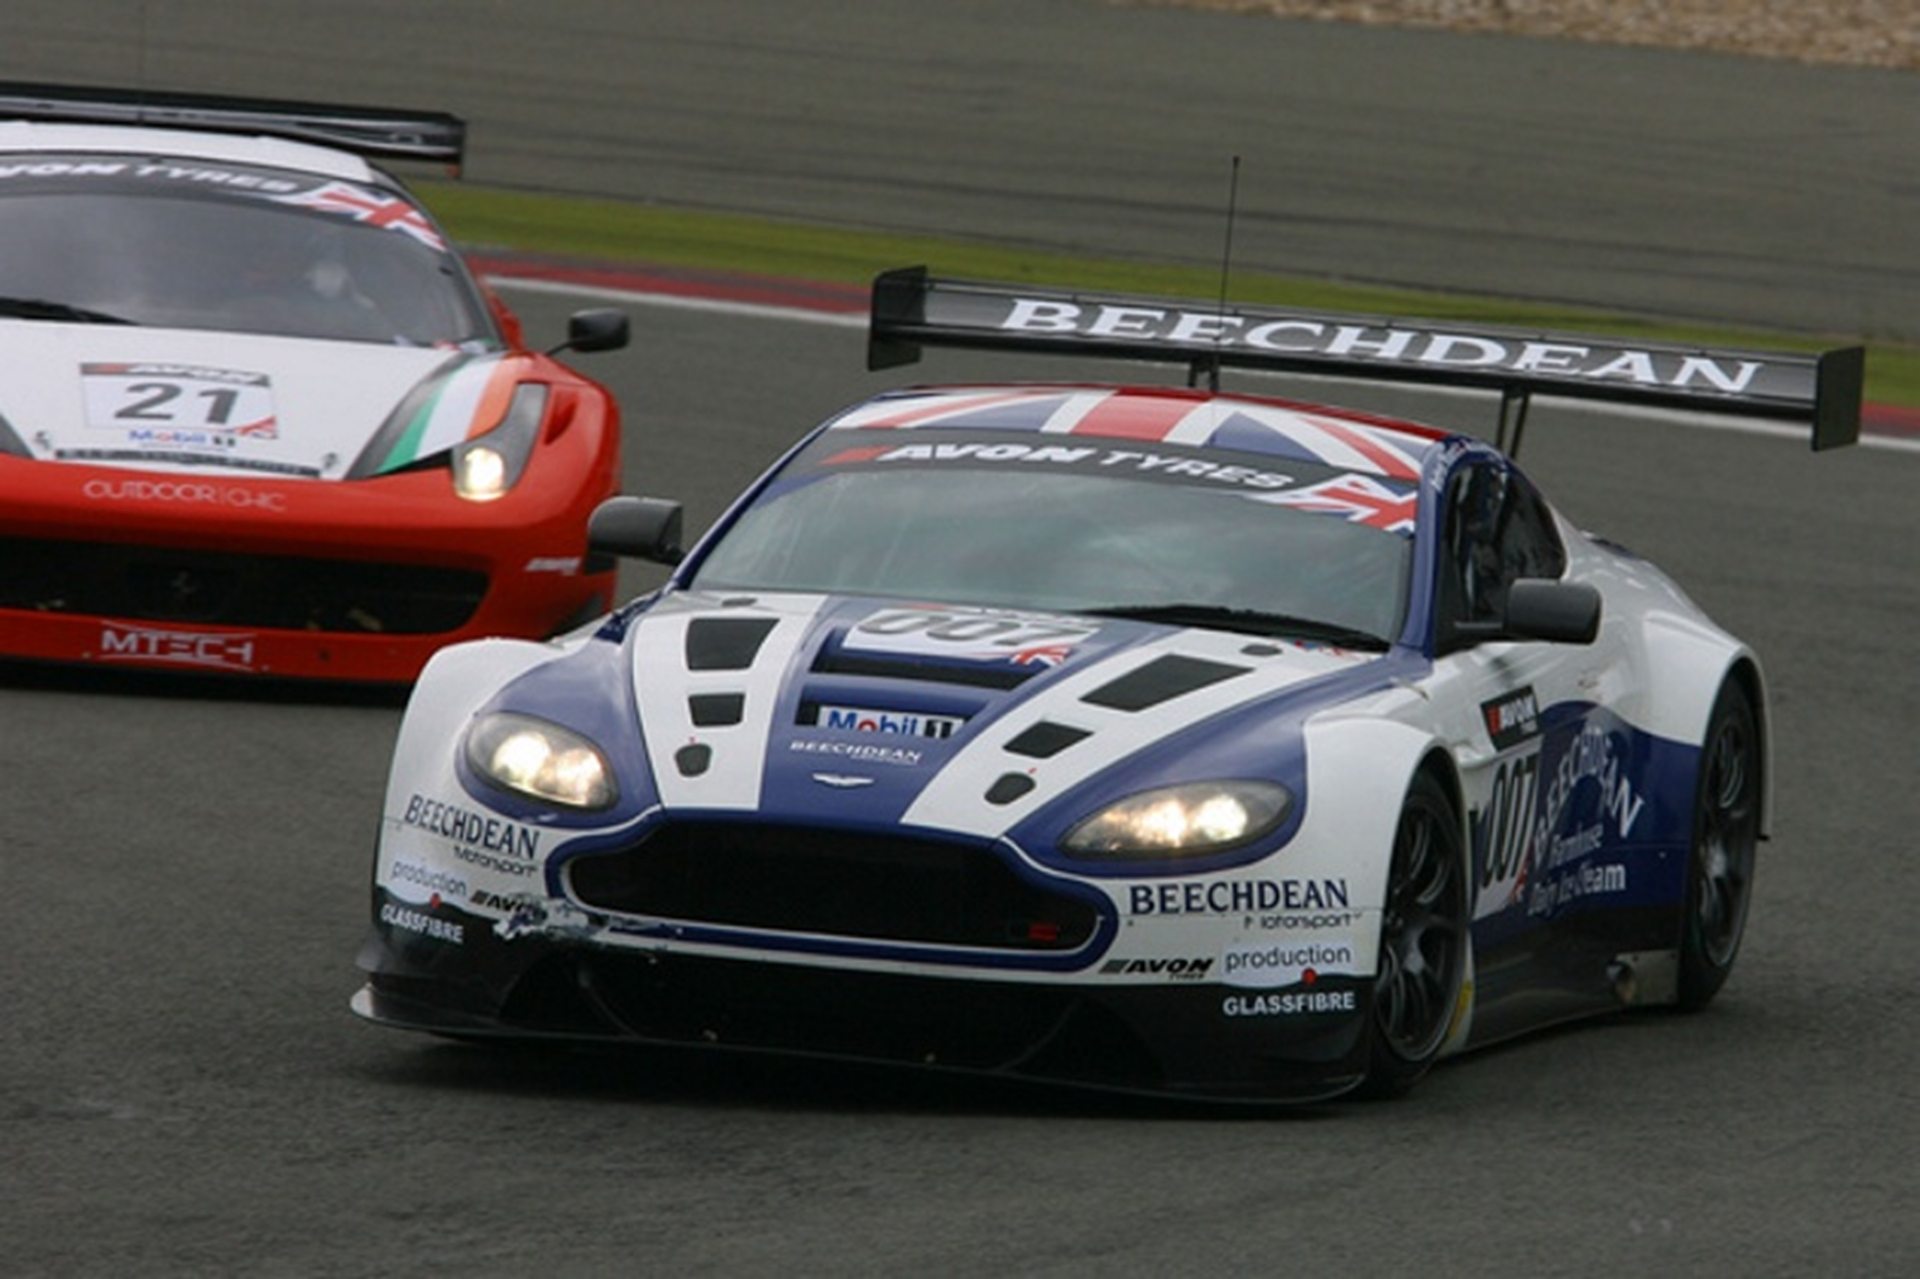 Beechdean Motorsport Secures First Race Win For Aston Martin V12 Vantage Gt3